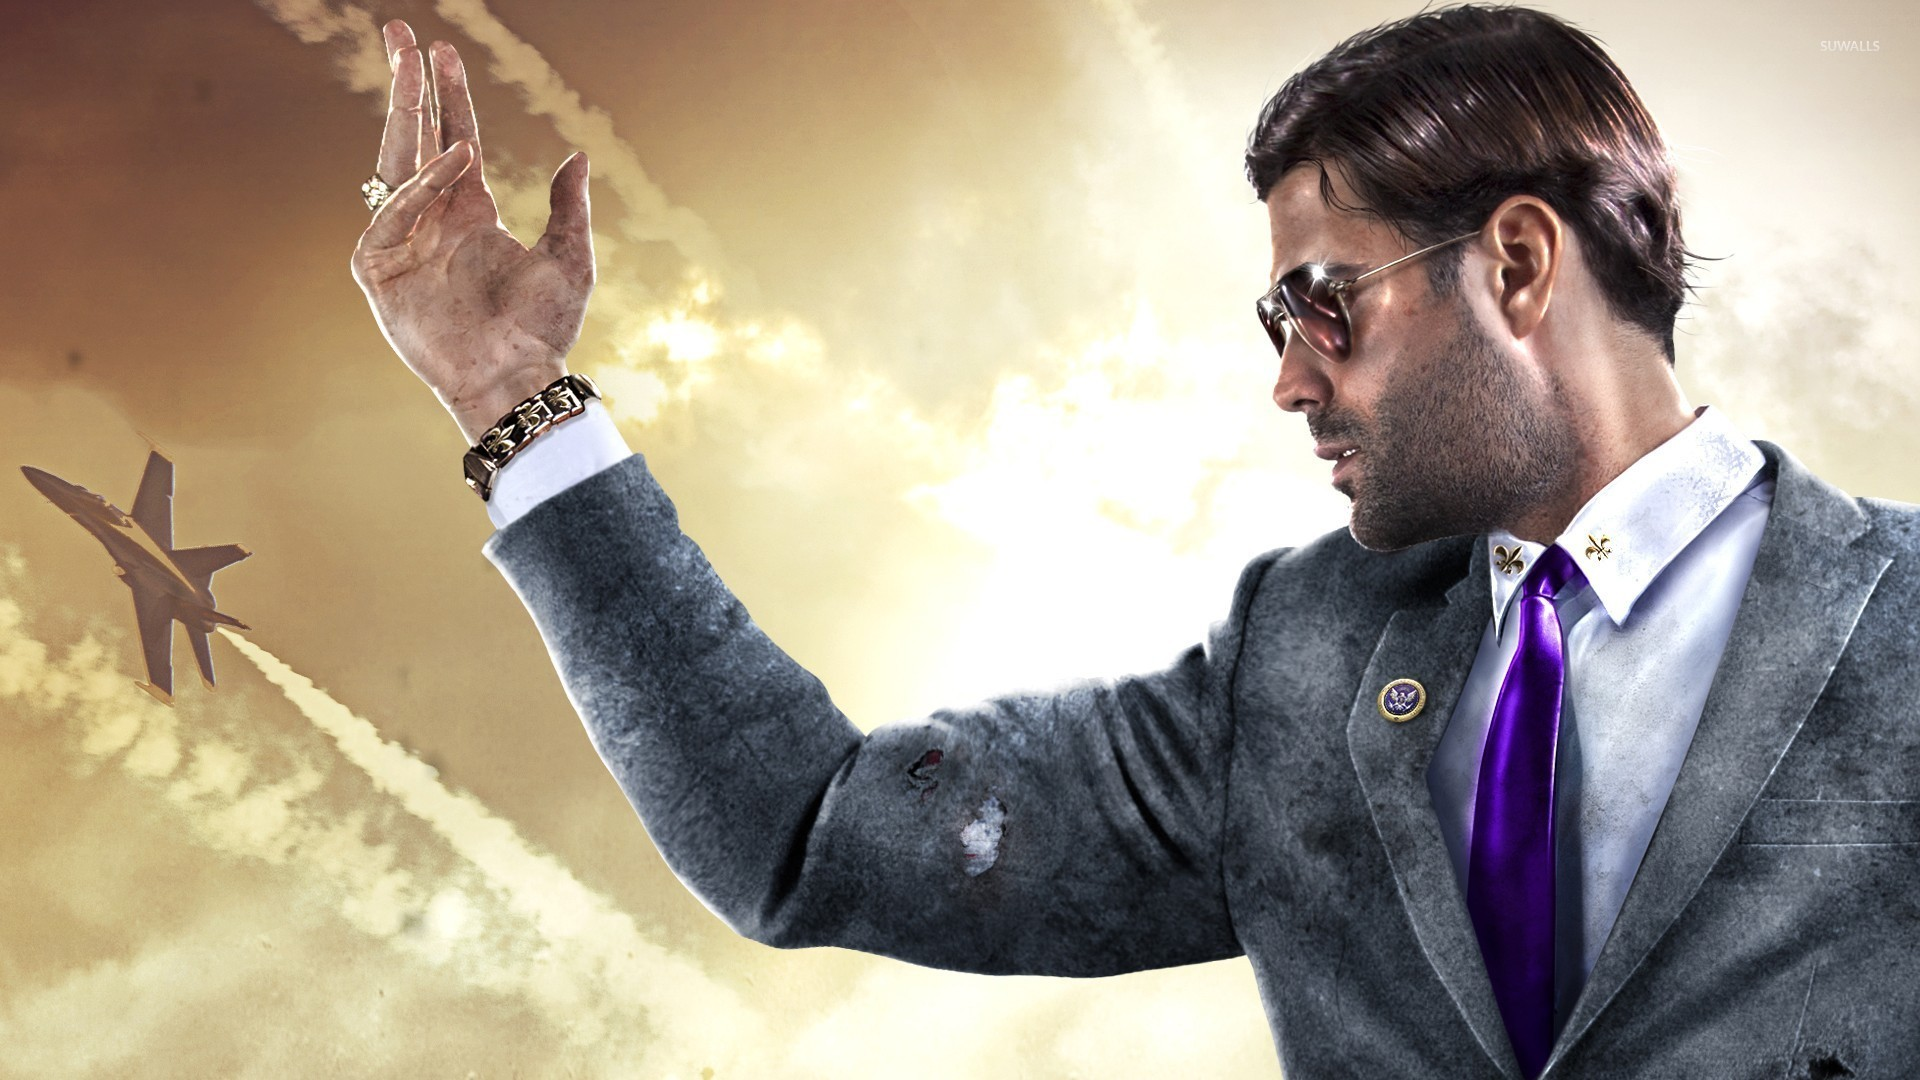 Saints Row Iv 7 Wallpaper Game Wallpapers 21696